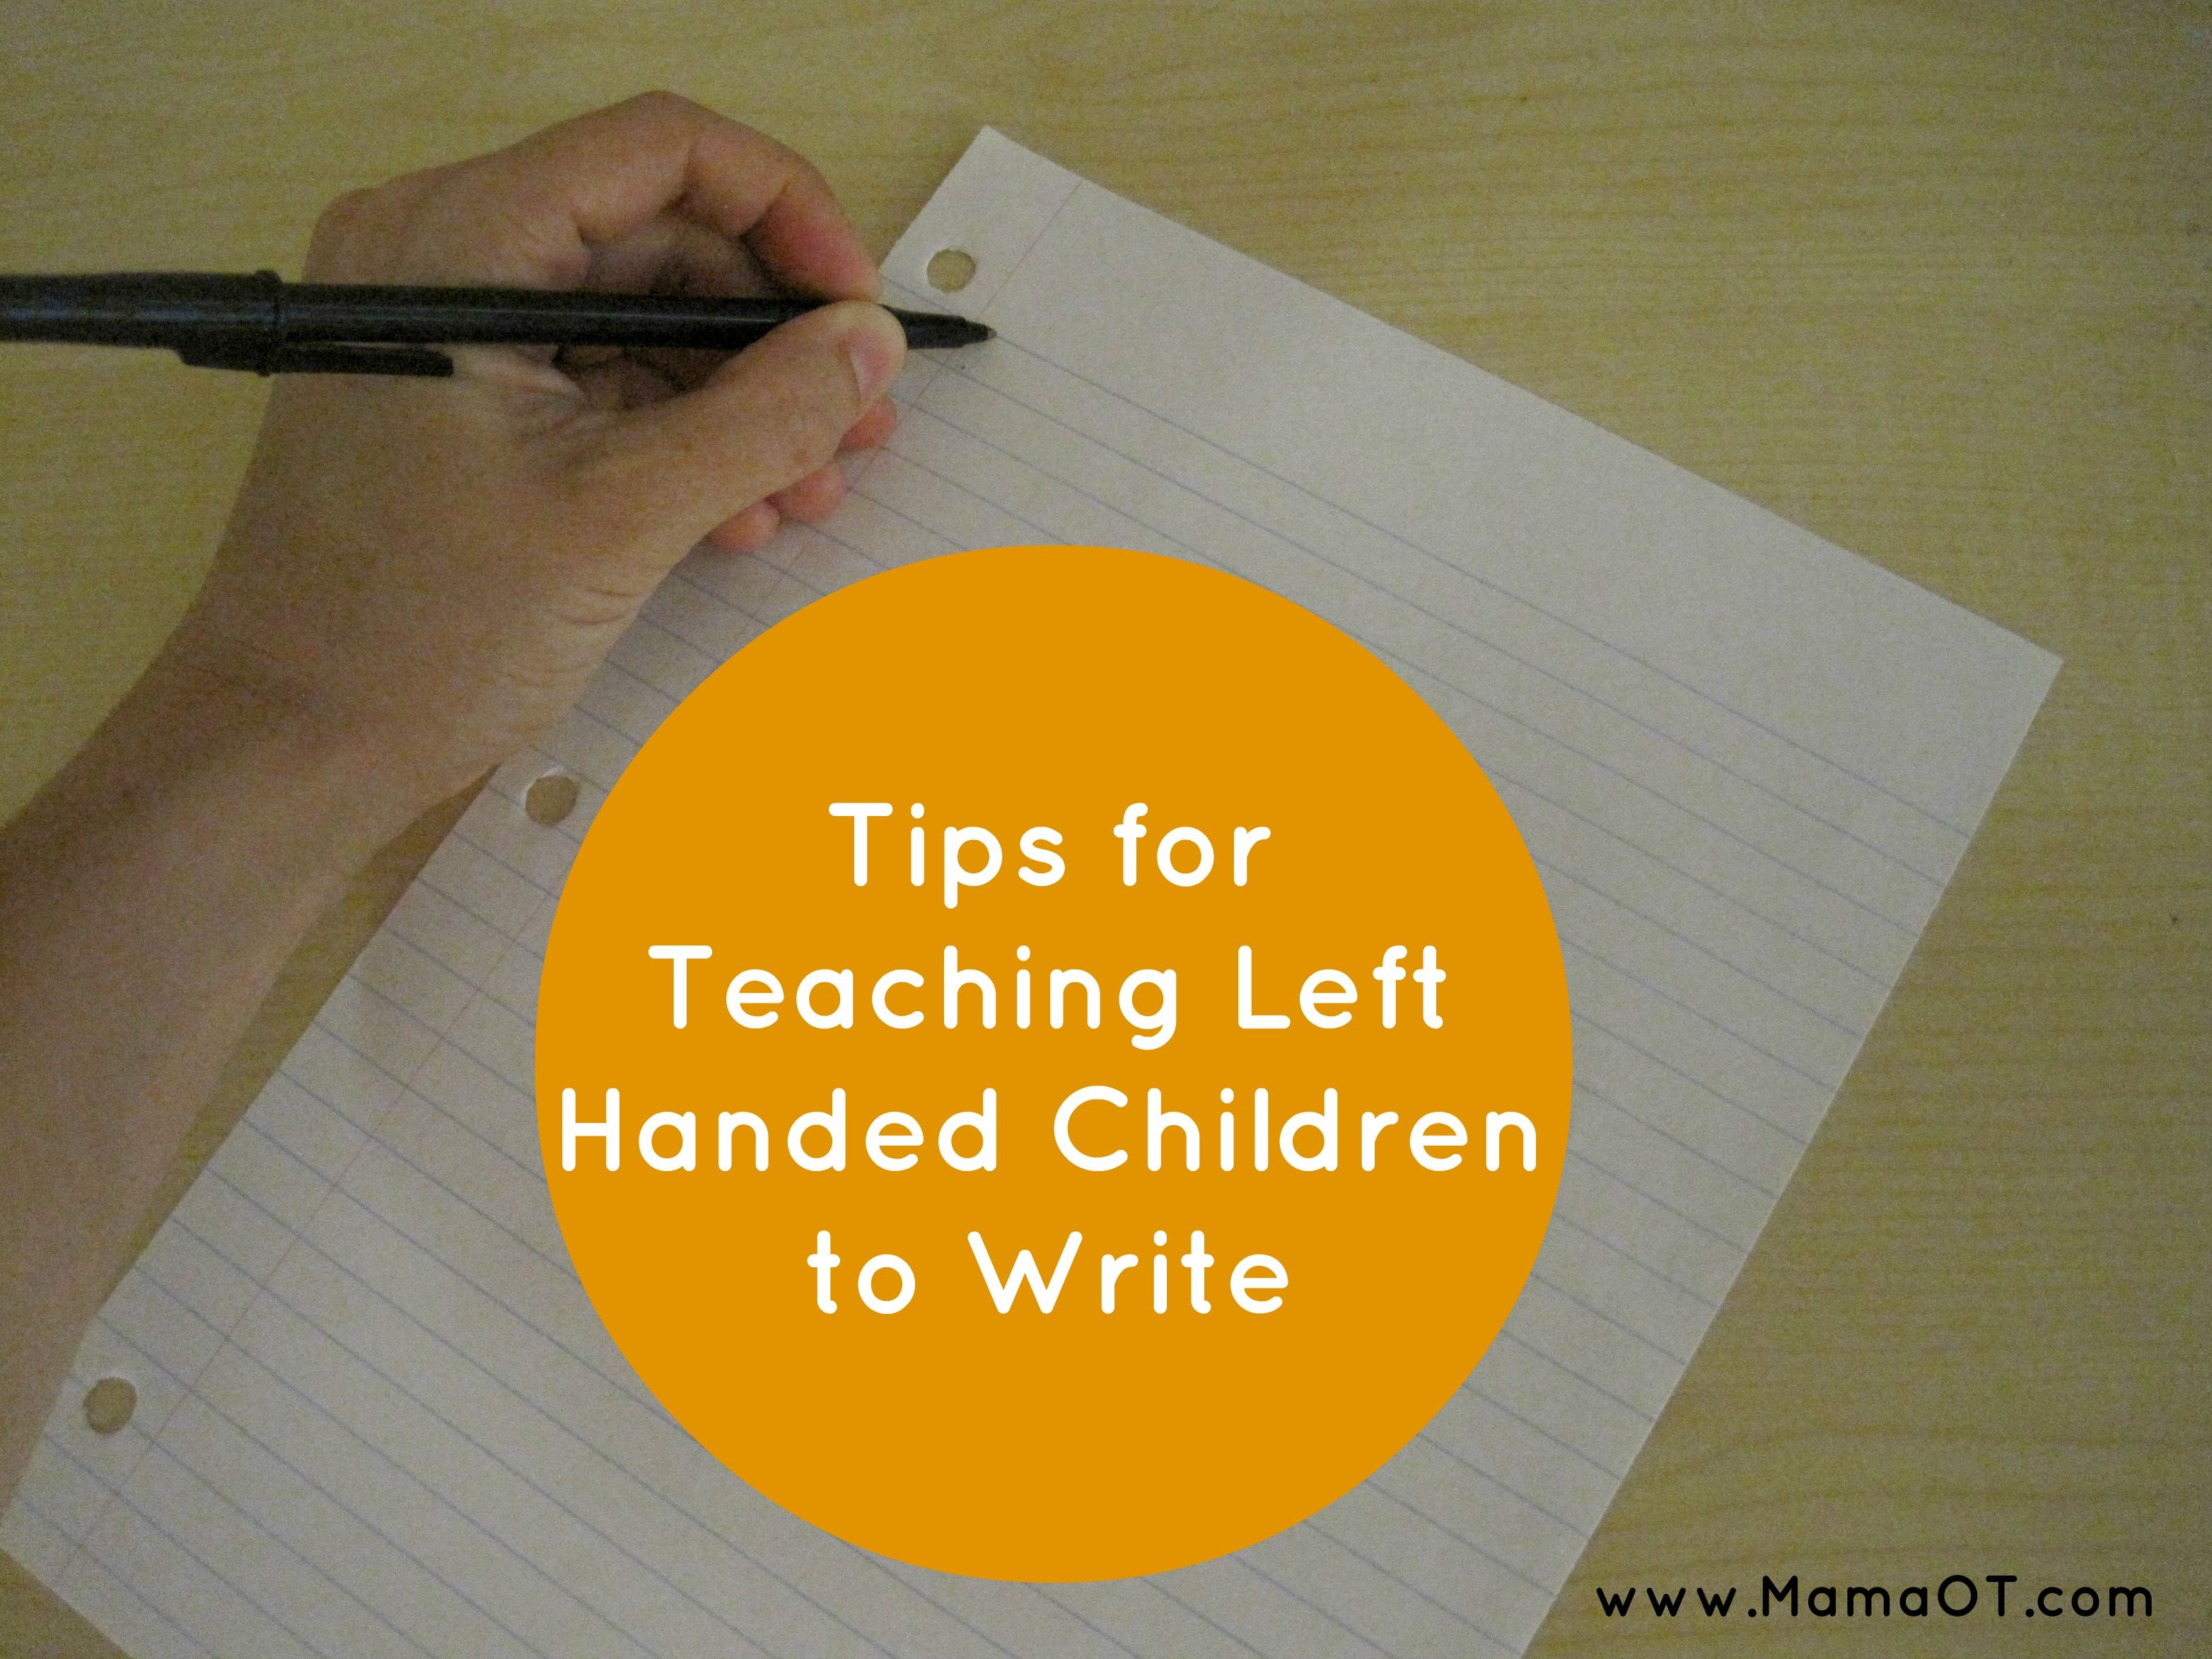 best writing images elementary teacher school  an occupational therapist shares some tips for teaching left handed children how to write